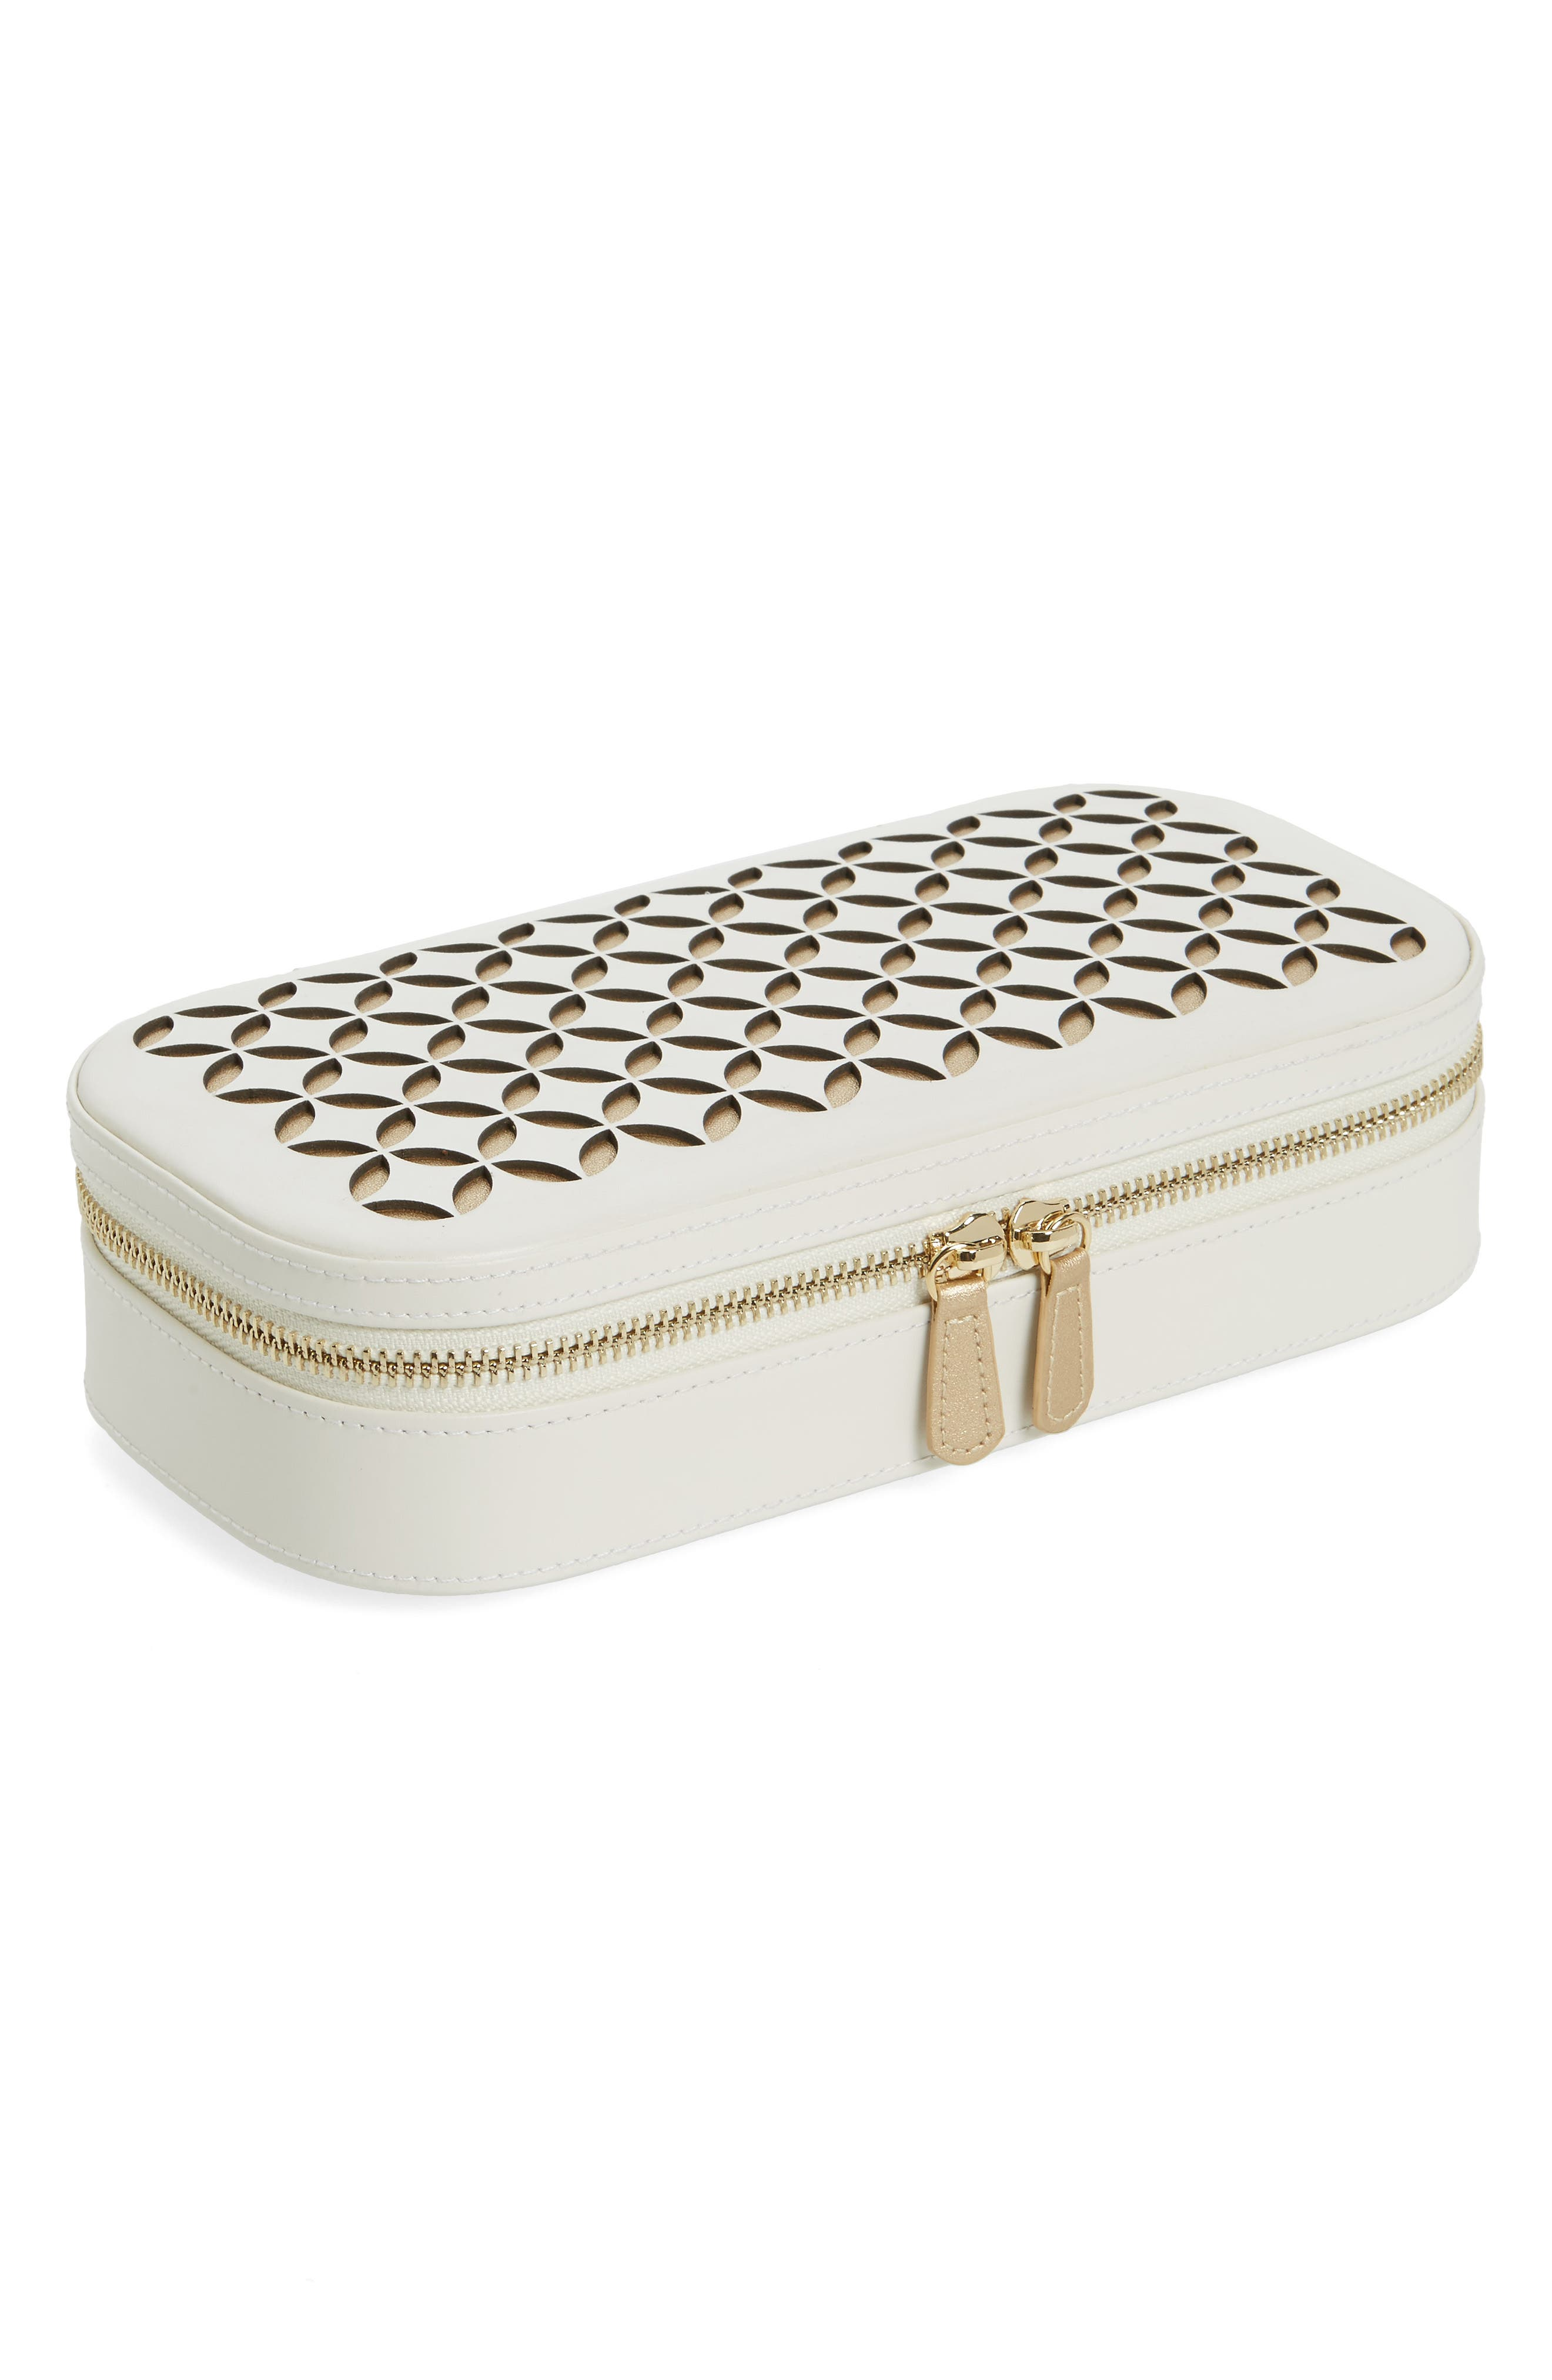 Chloe Zip Jewelry Case,                             Main thumbnail 1, color,                             900